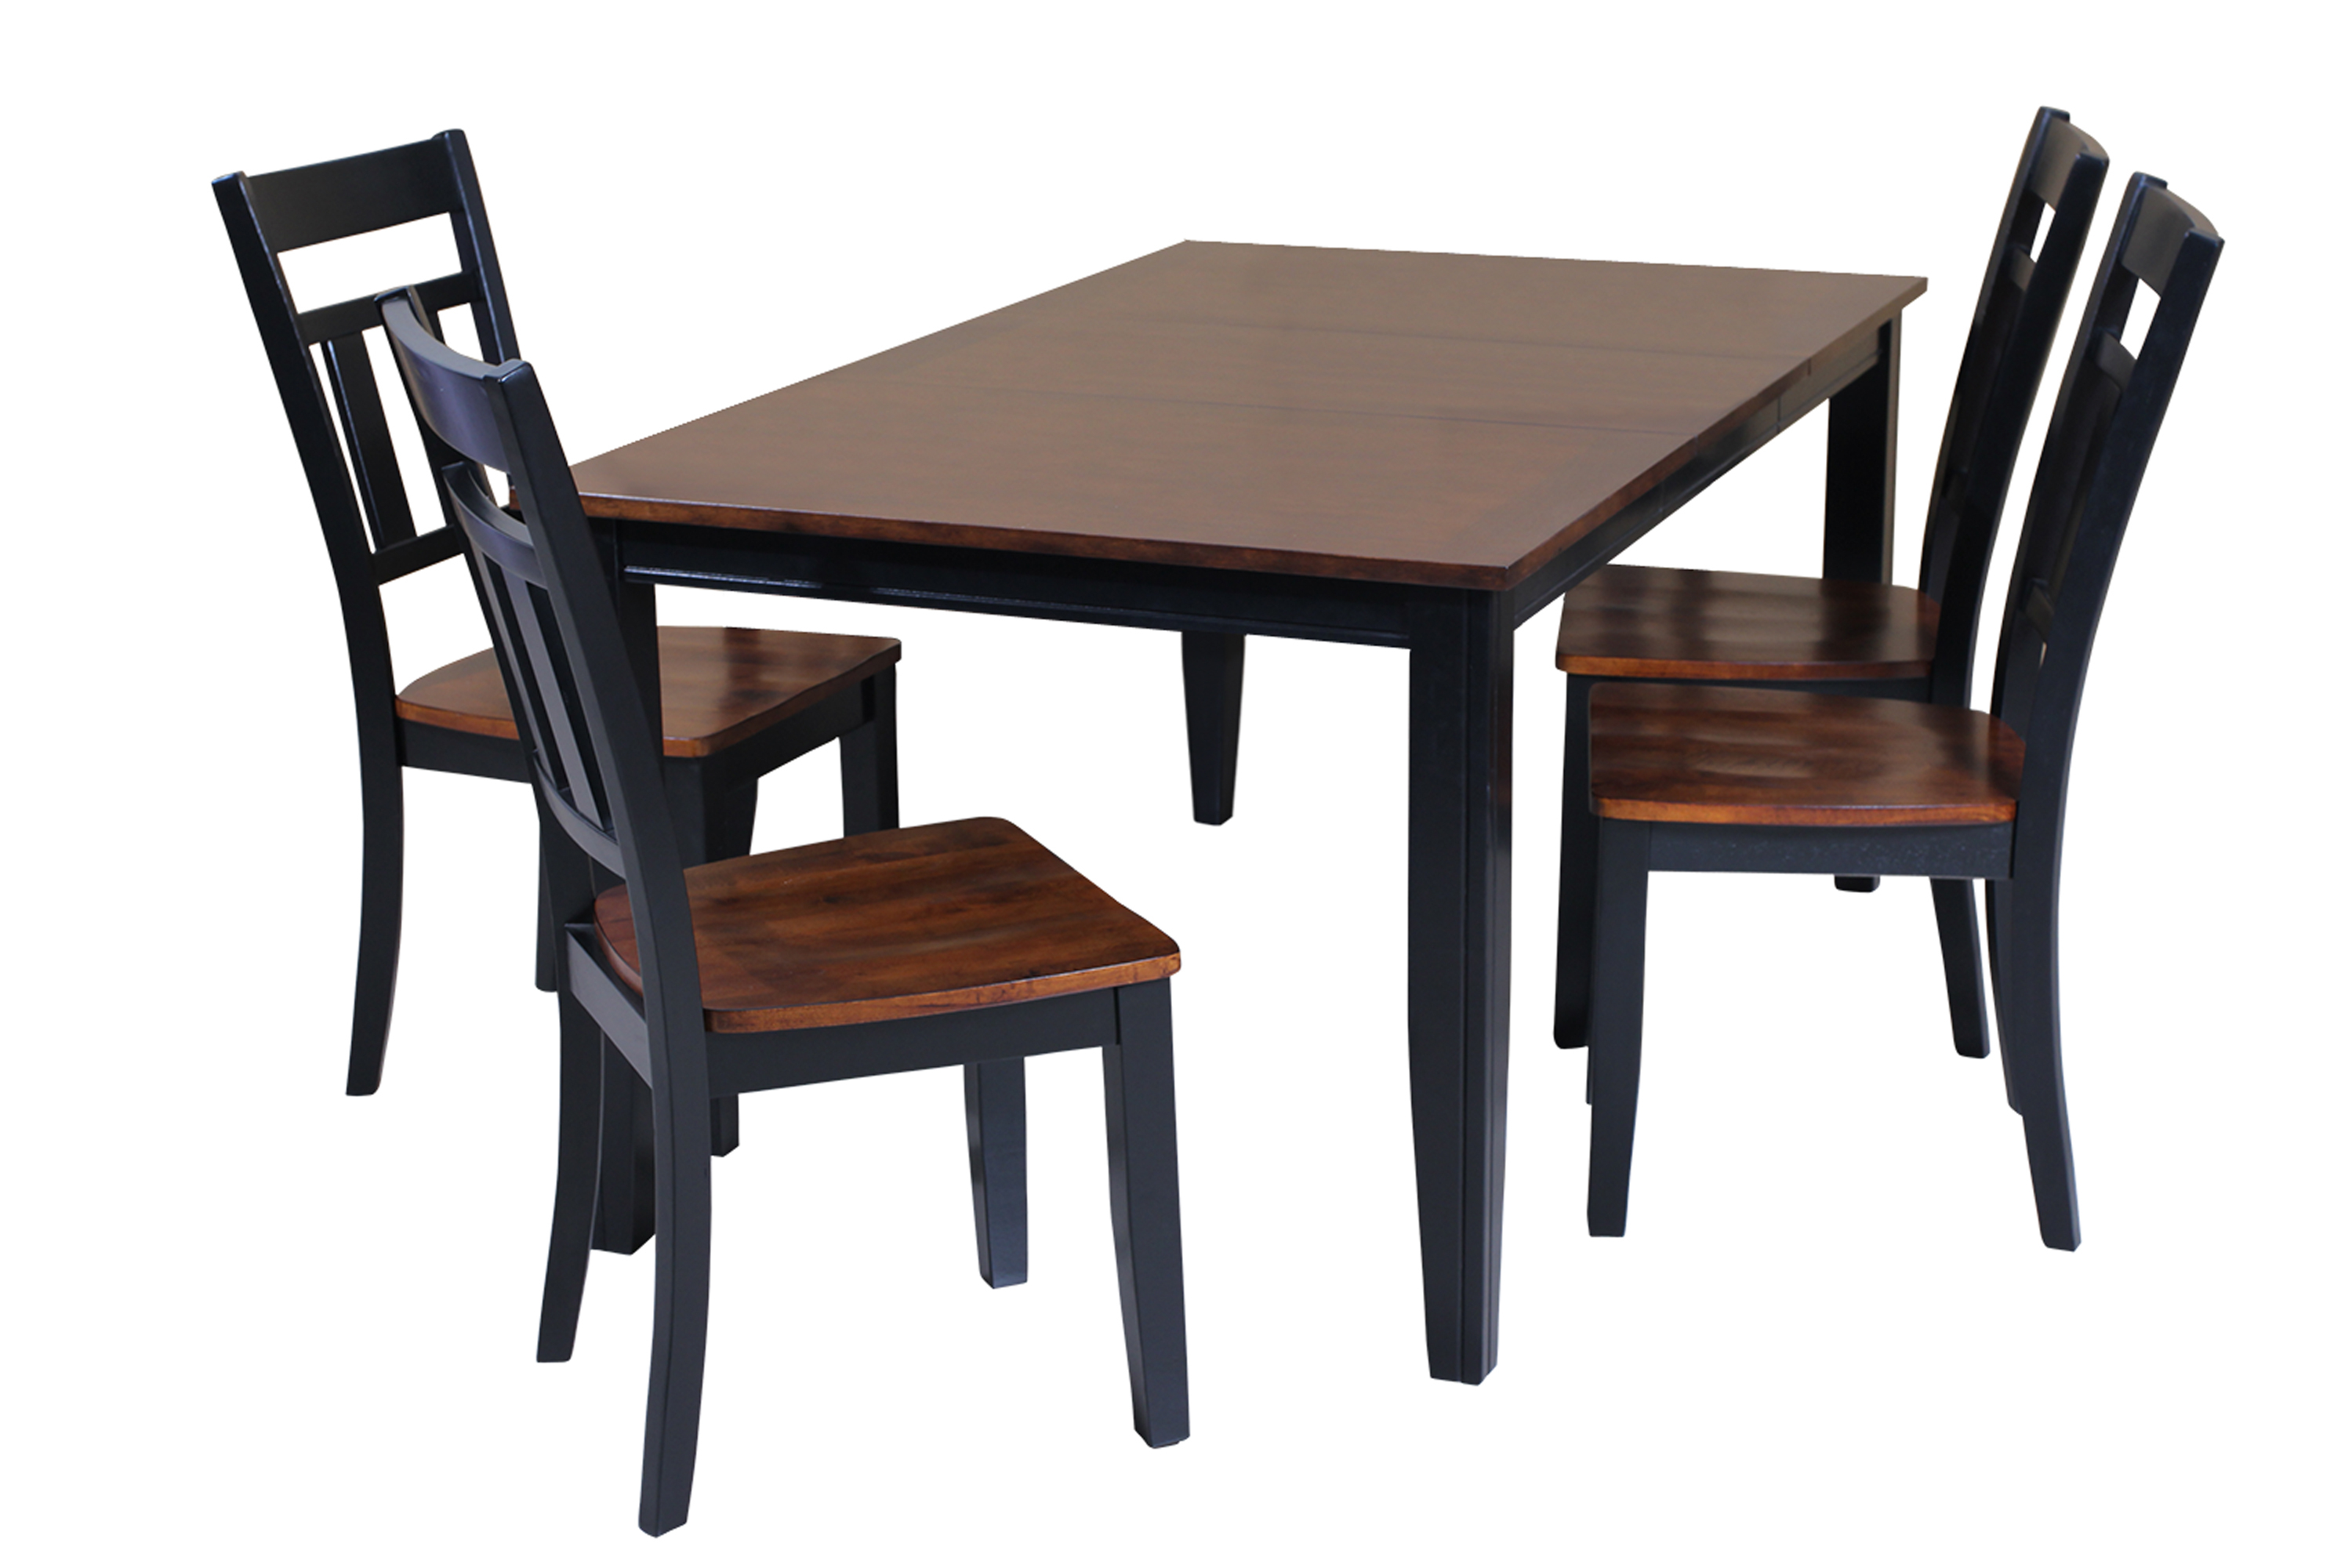 Ttp Furnish Regarding Well Liked Adan 5 Piece Solid Wood Dining Sets (Set Of 5) (View 22 of 25)